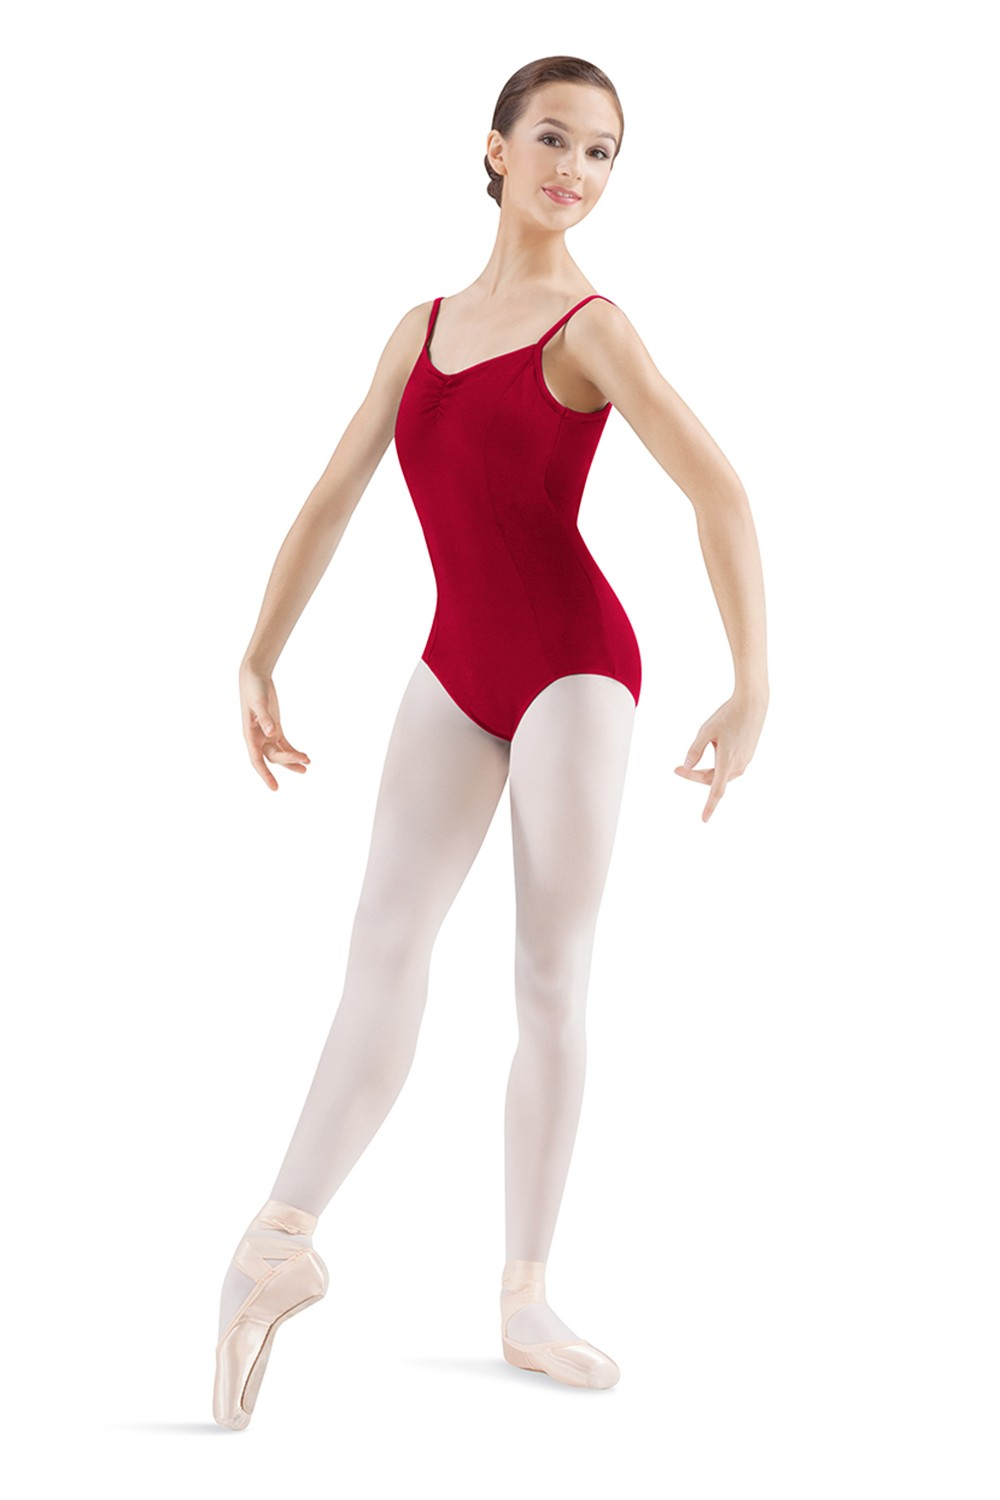 Justaucorps À Bretelles Froncé Women's Dance Leotards